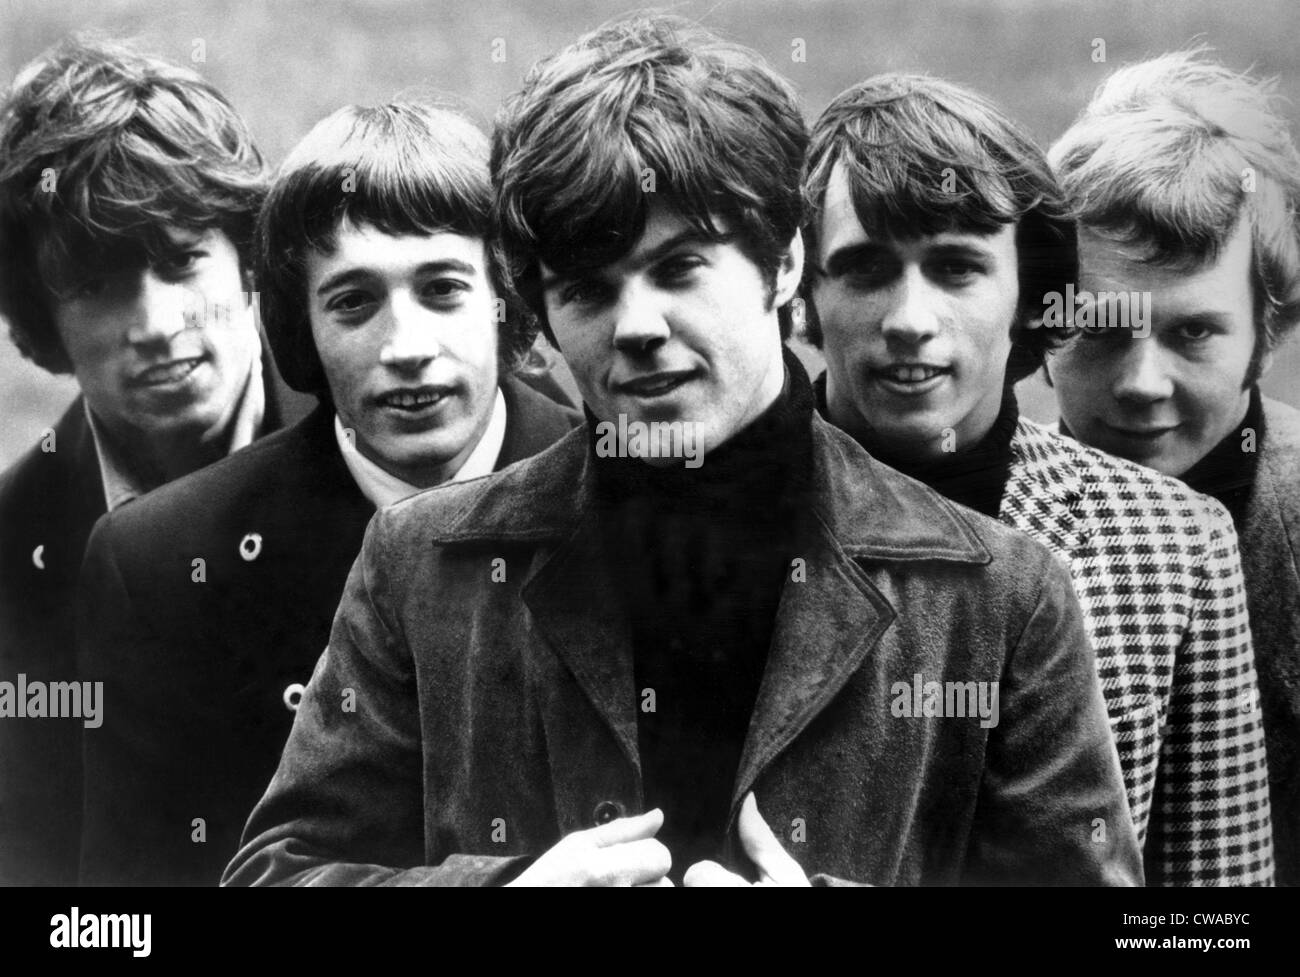 Bee Gees, (l to r): Barry Gibb, Robin Gibb, Vince Melouney, Maurice Gibb, Colin Petersen, ca. late 1960s/early 1970s. - Stock Image